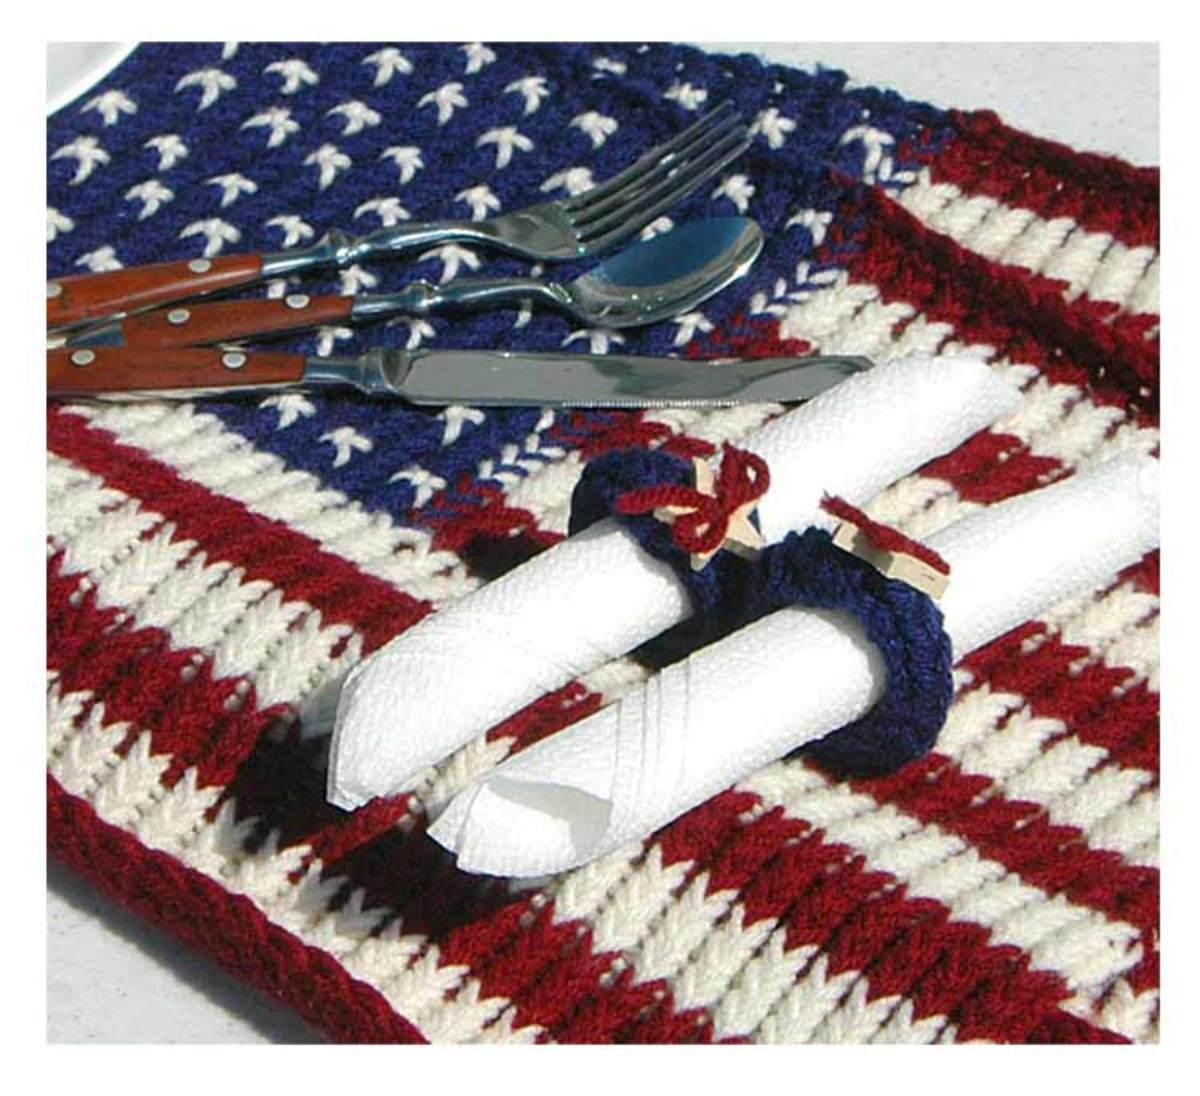 Red, white, and blue flag placemat to dress up any Fourth of July, Labor Day, or Memorial Day celebration.